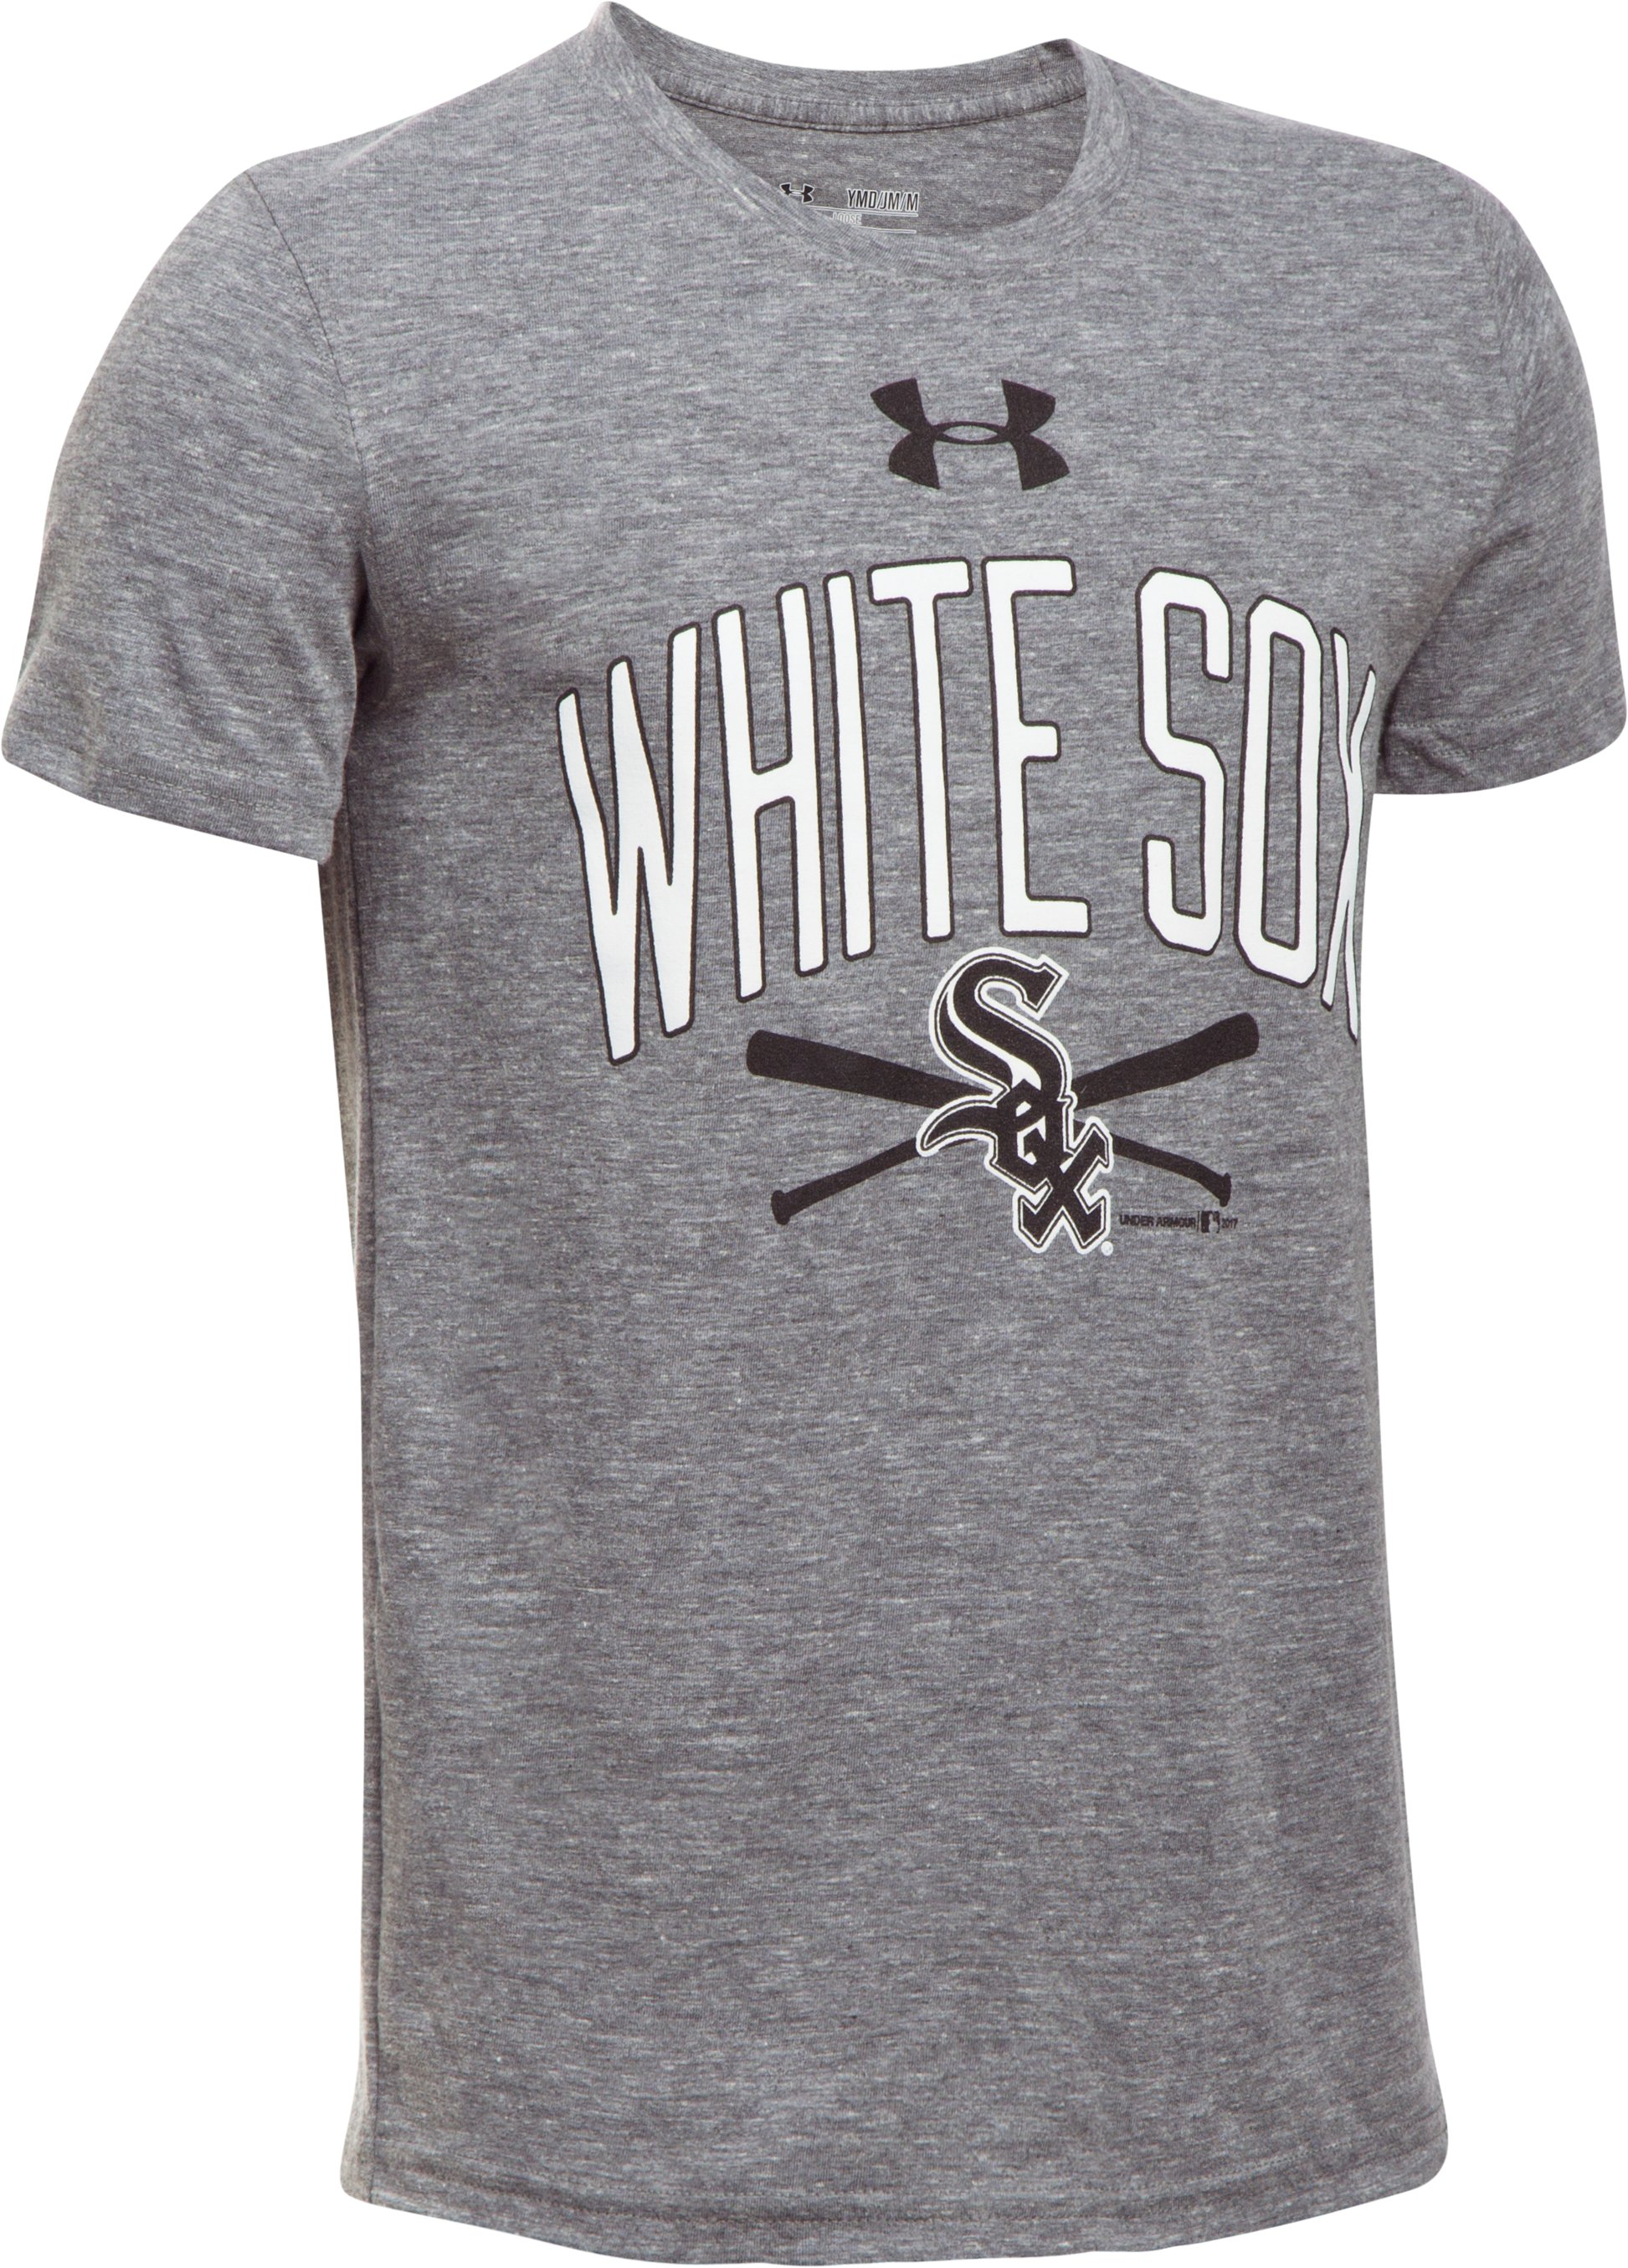 Boys' Chicago White Sox Tri-Blend T-Shirt, True Gray Heather,